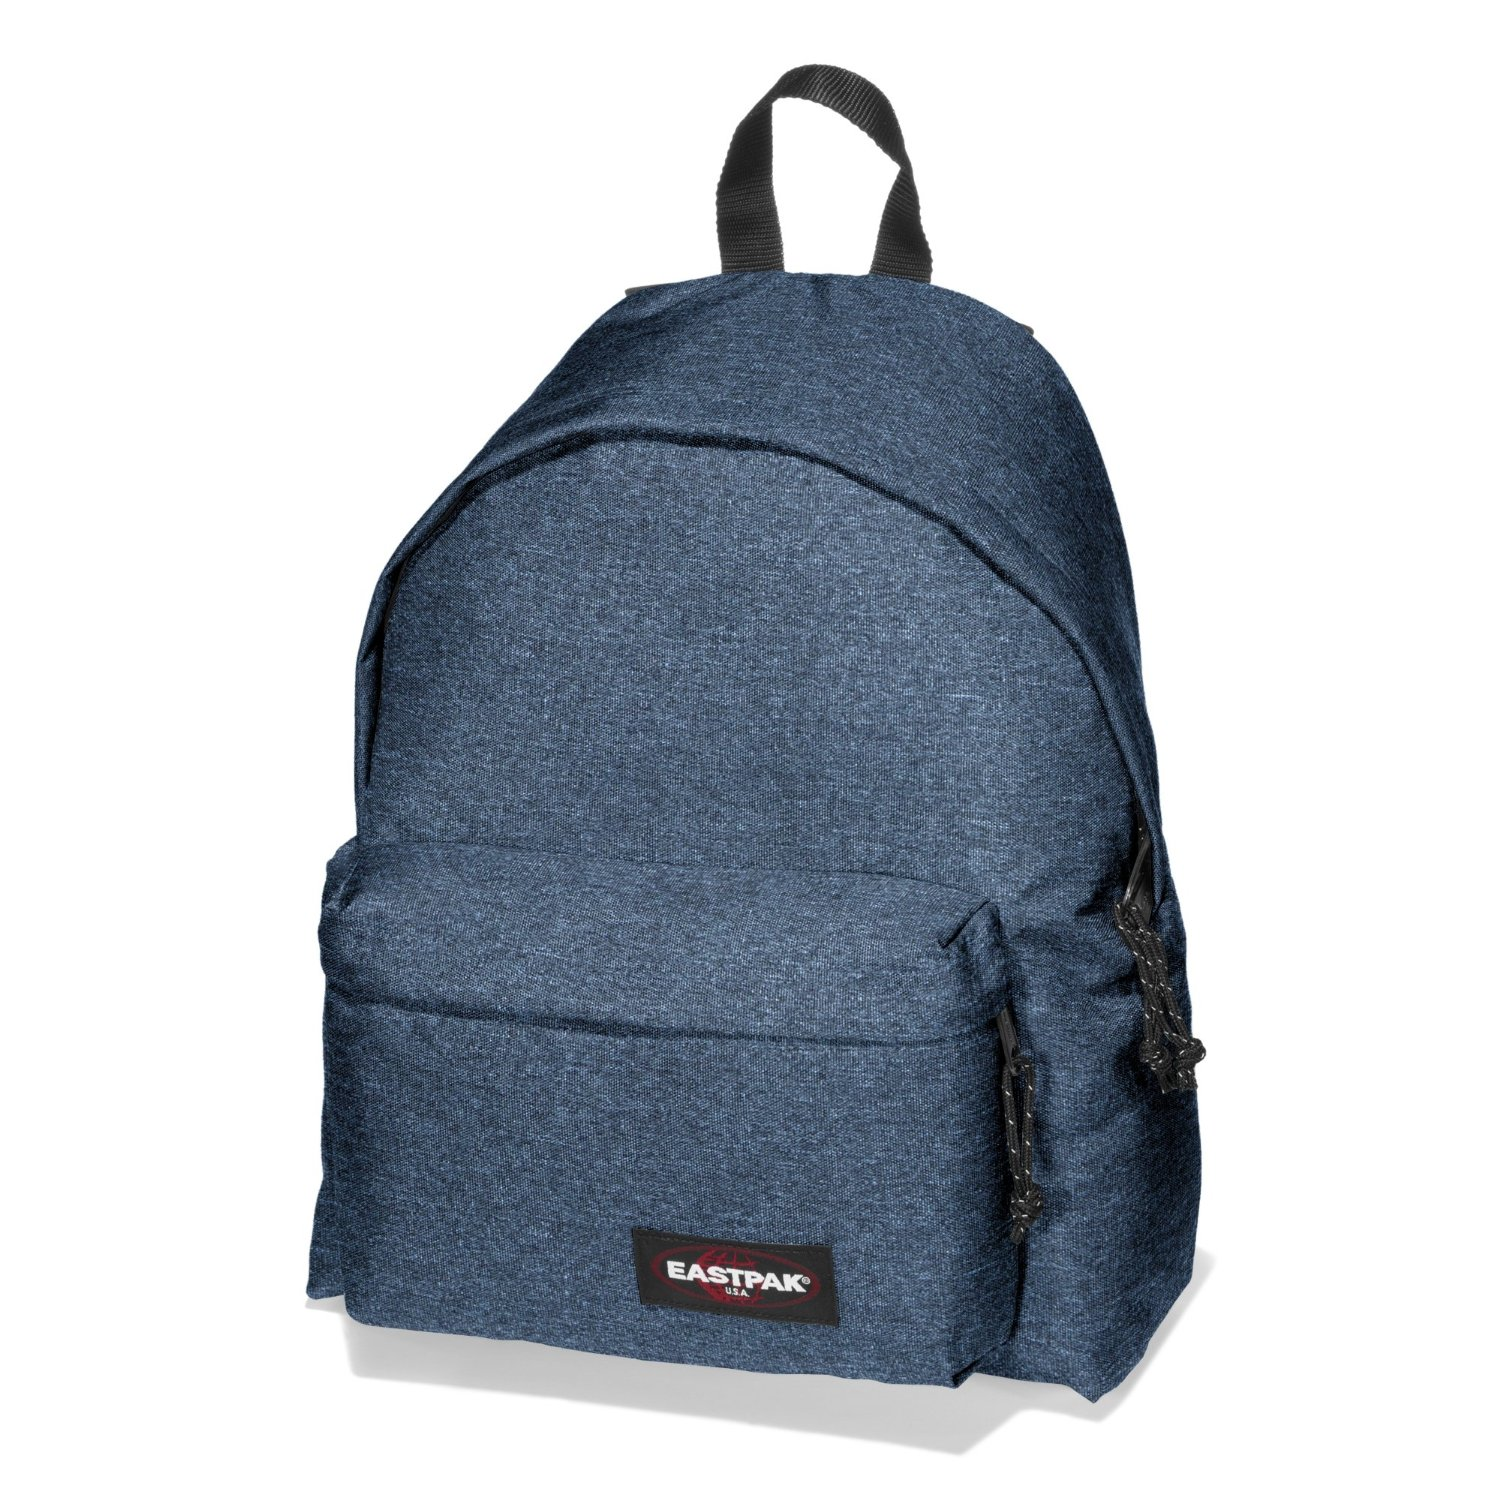 Eastpak Padded Pak'r EK620_82D Unisex School Backpack Bag 24L - Double Denim